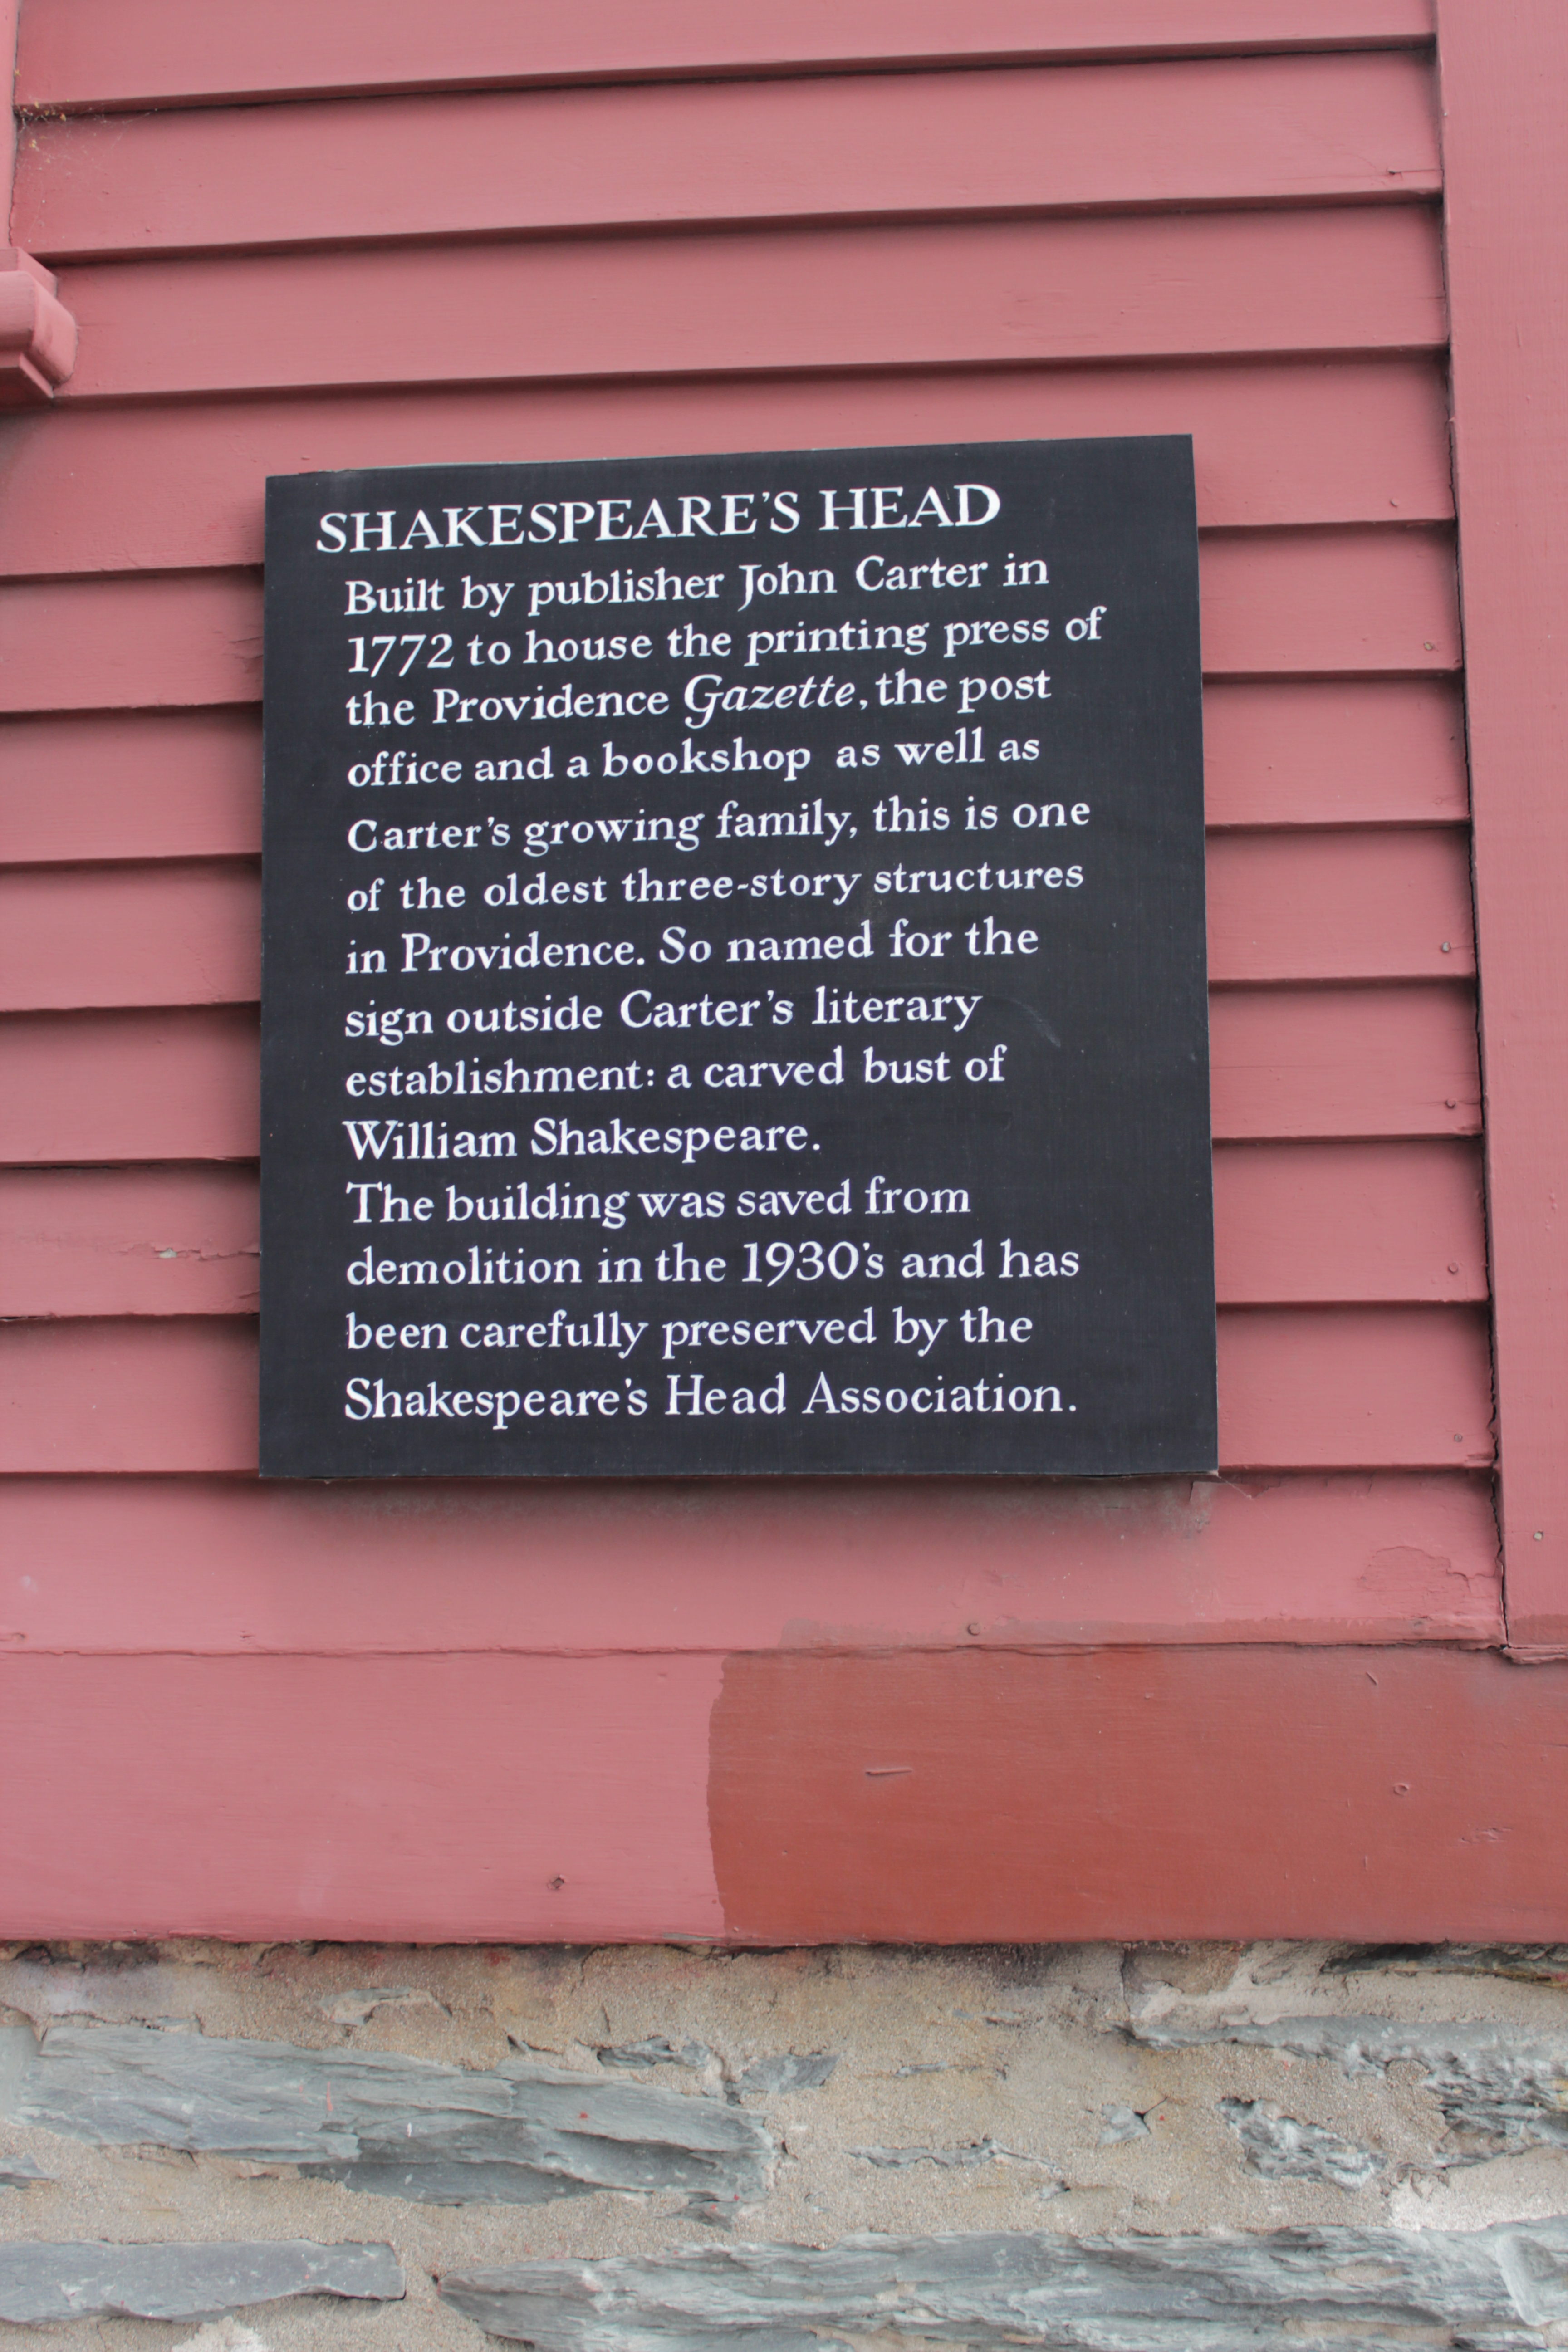 Shakespeare's Head historic marker (image from Historic Markers Database)